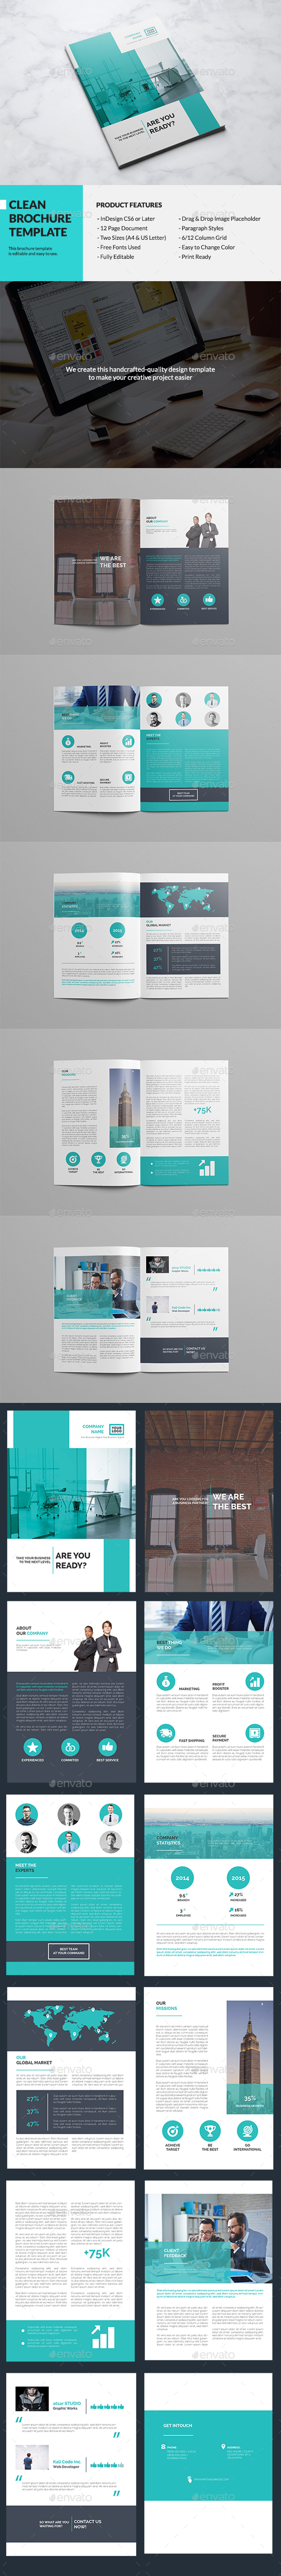 Clean Multipurpose Brochure - Brochures Print Templates